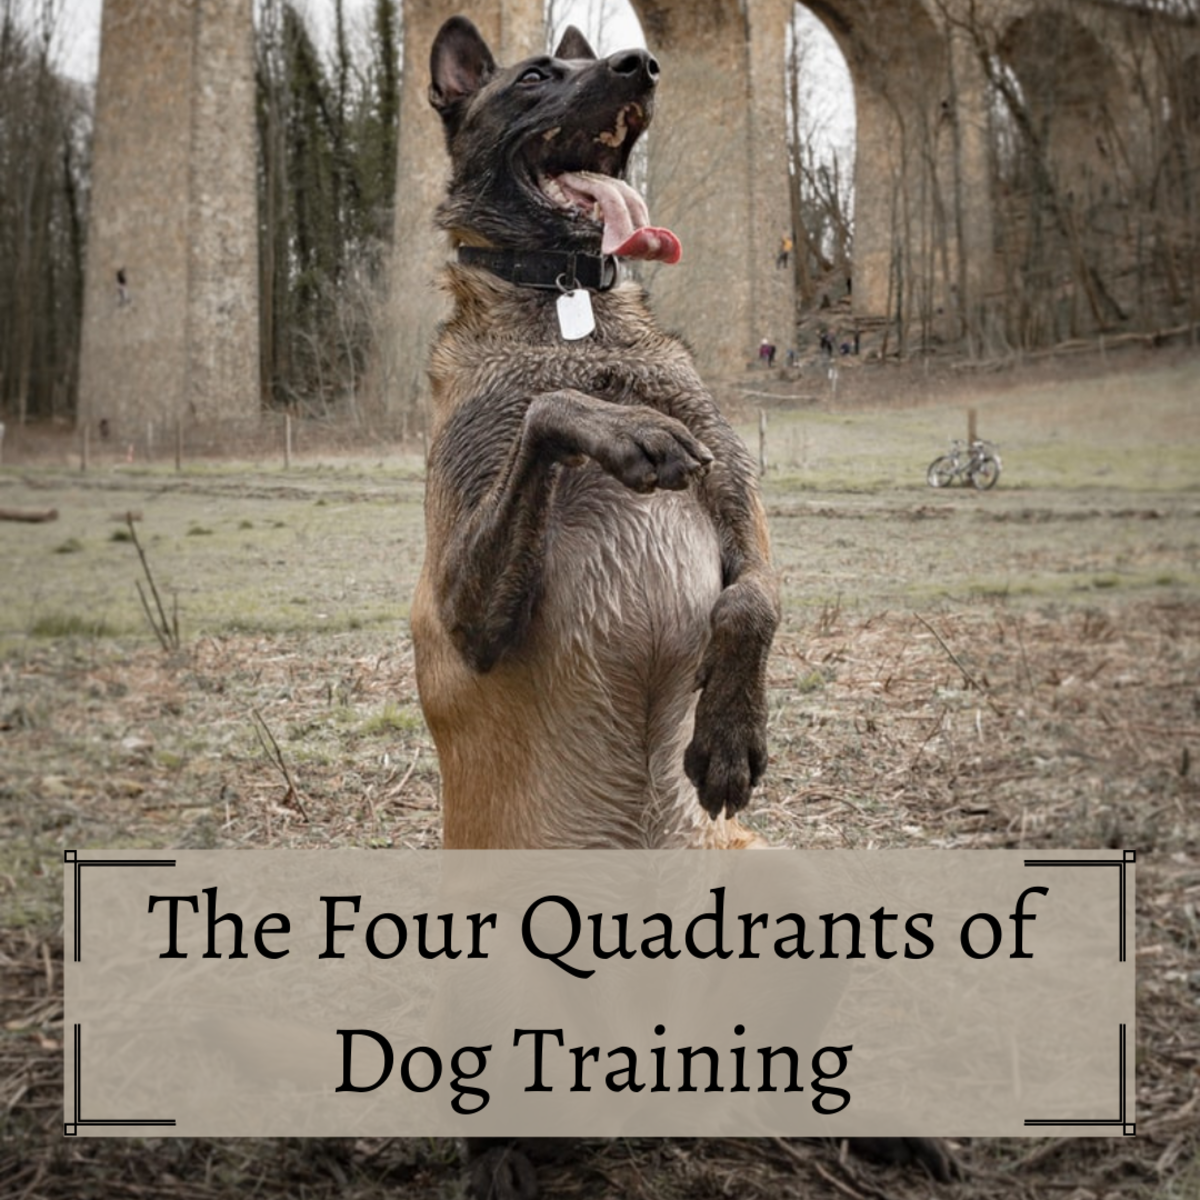 You don't need to be a certified dog trainer to learn the dynamics of training—all it takes is an understanding of how dogs react to their surroundings and how their environment affects them.